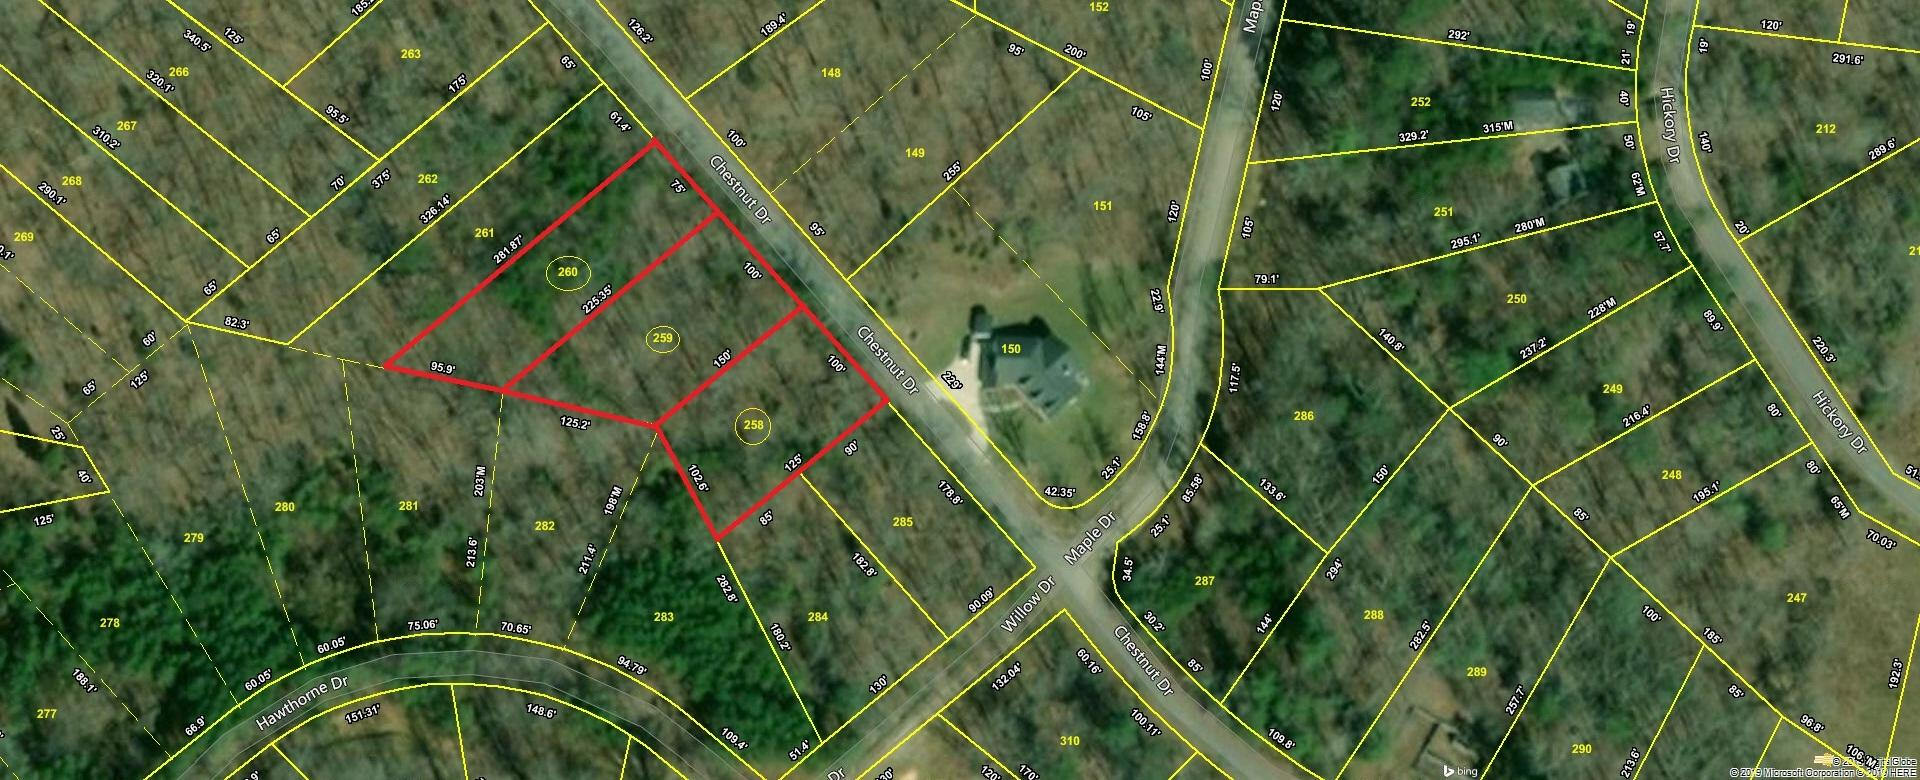 Lot 260 Chestnut Dr, Spring City, TN 37381